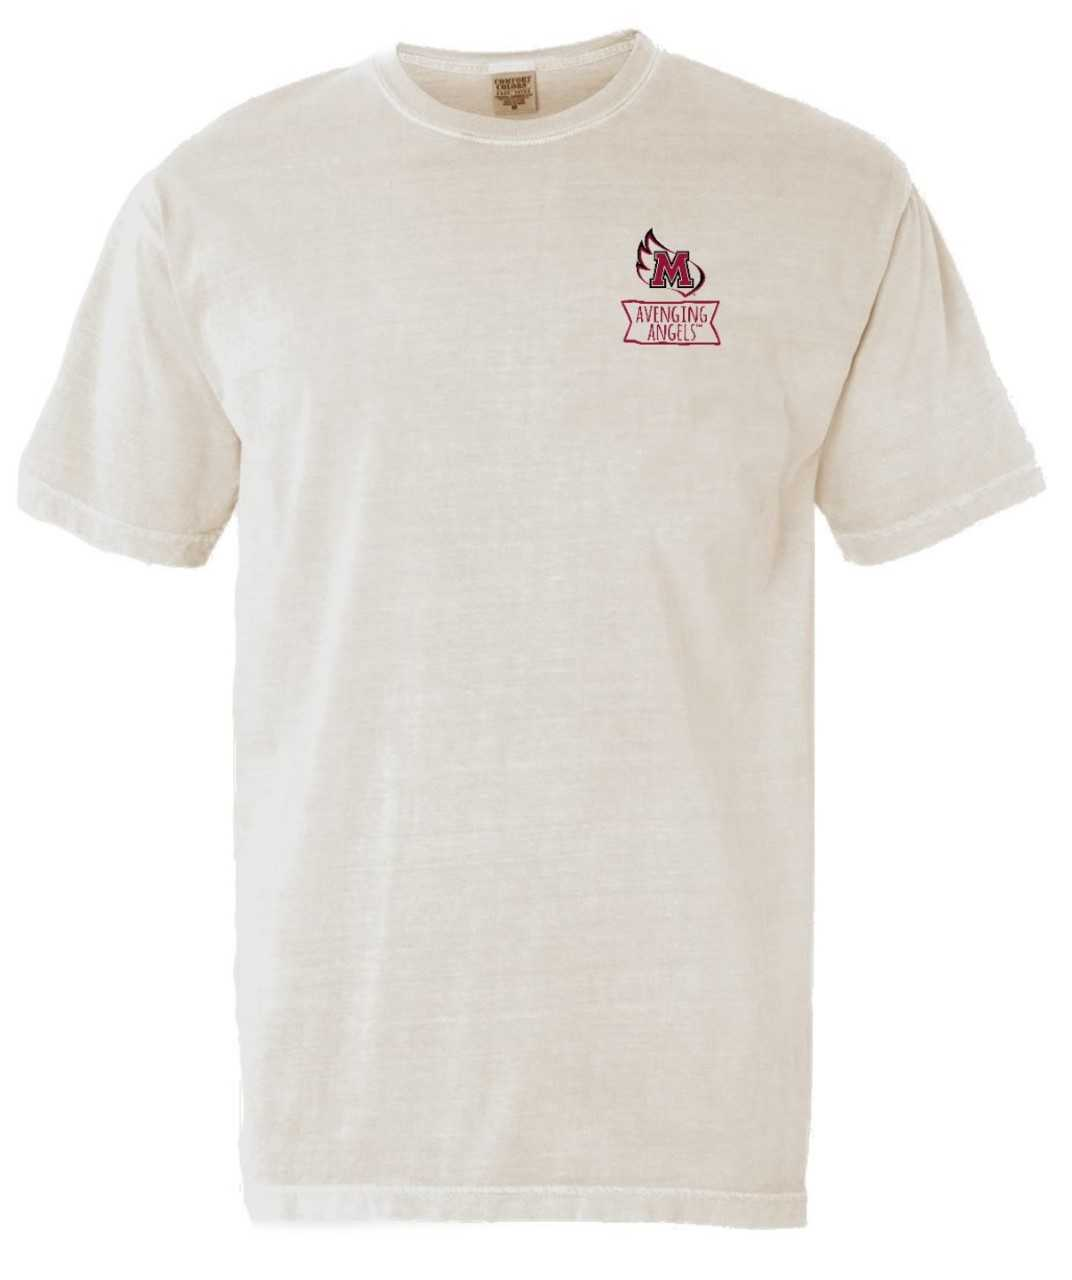 Alternative Image for the Comfort Colors T-Shirt, Ivory, Campus Life Images product